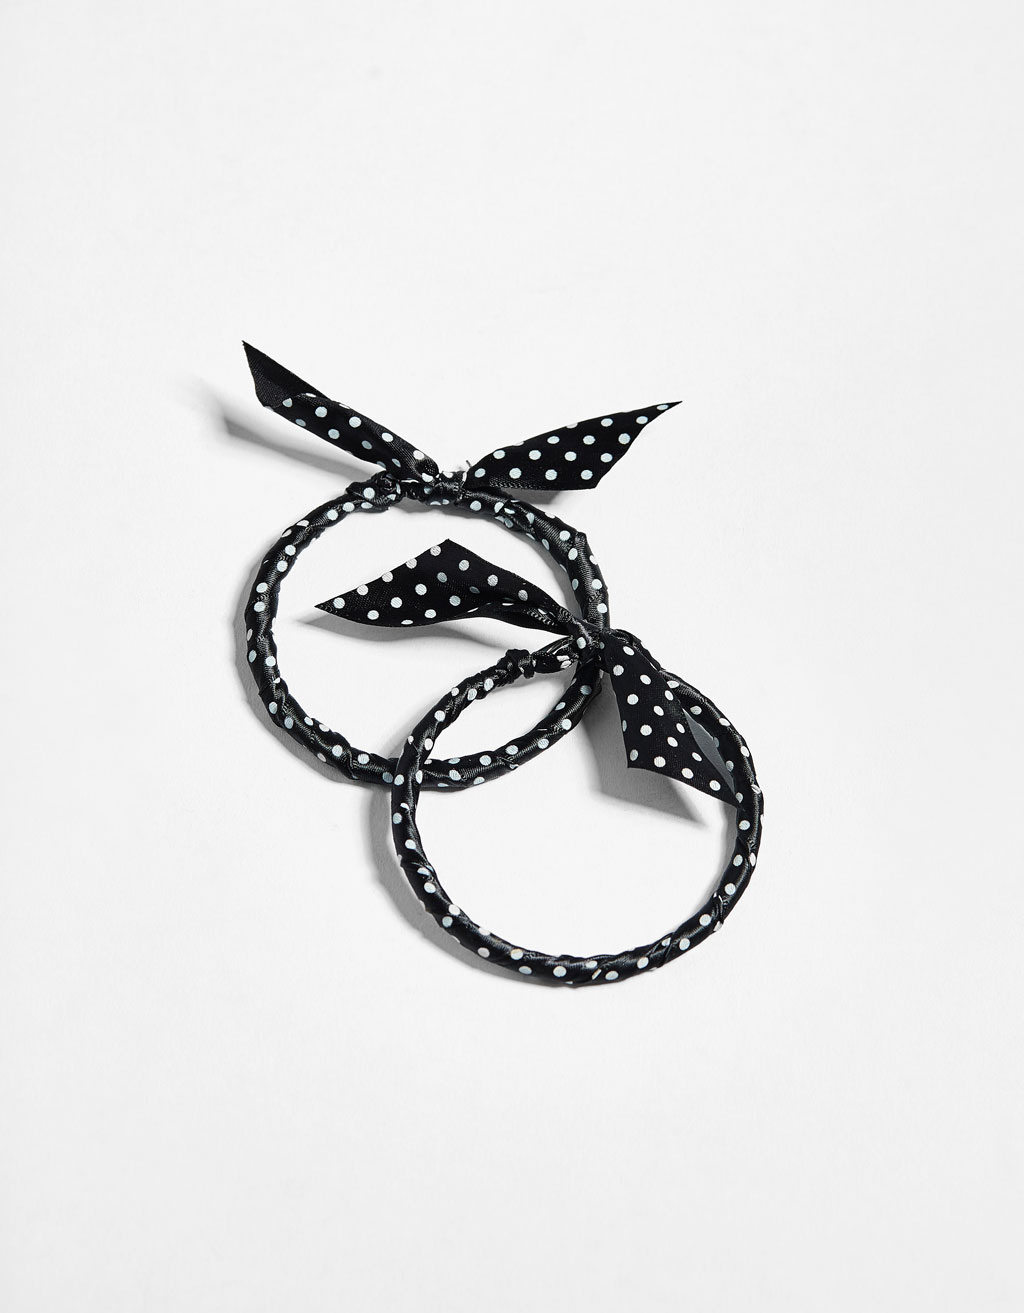 Hoop earrings with bow detail